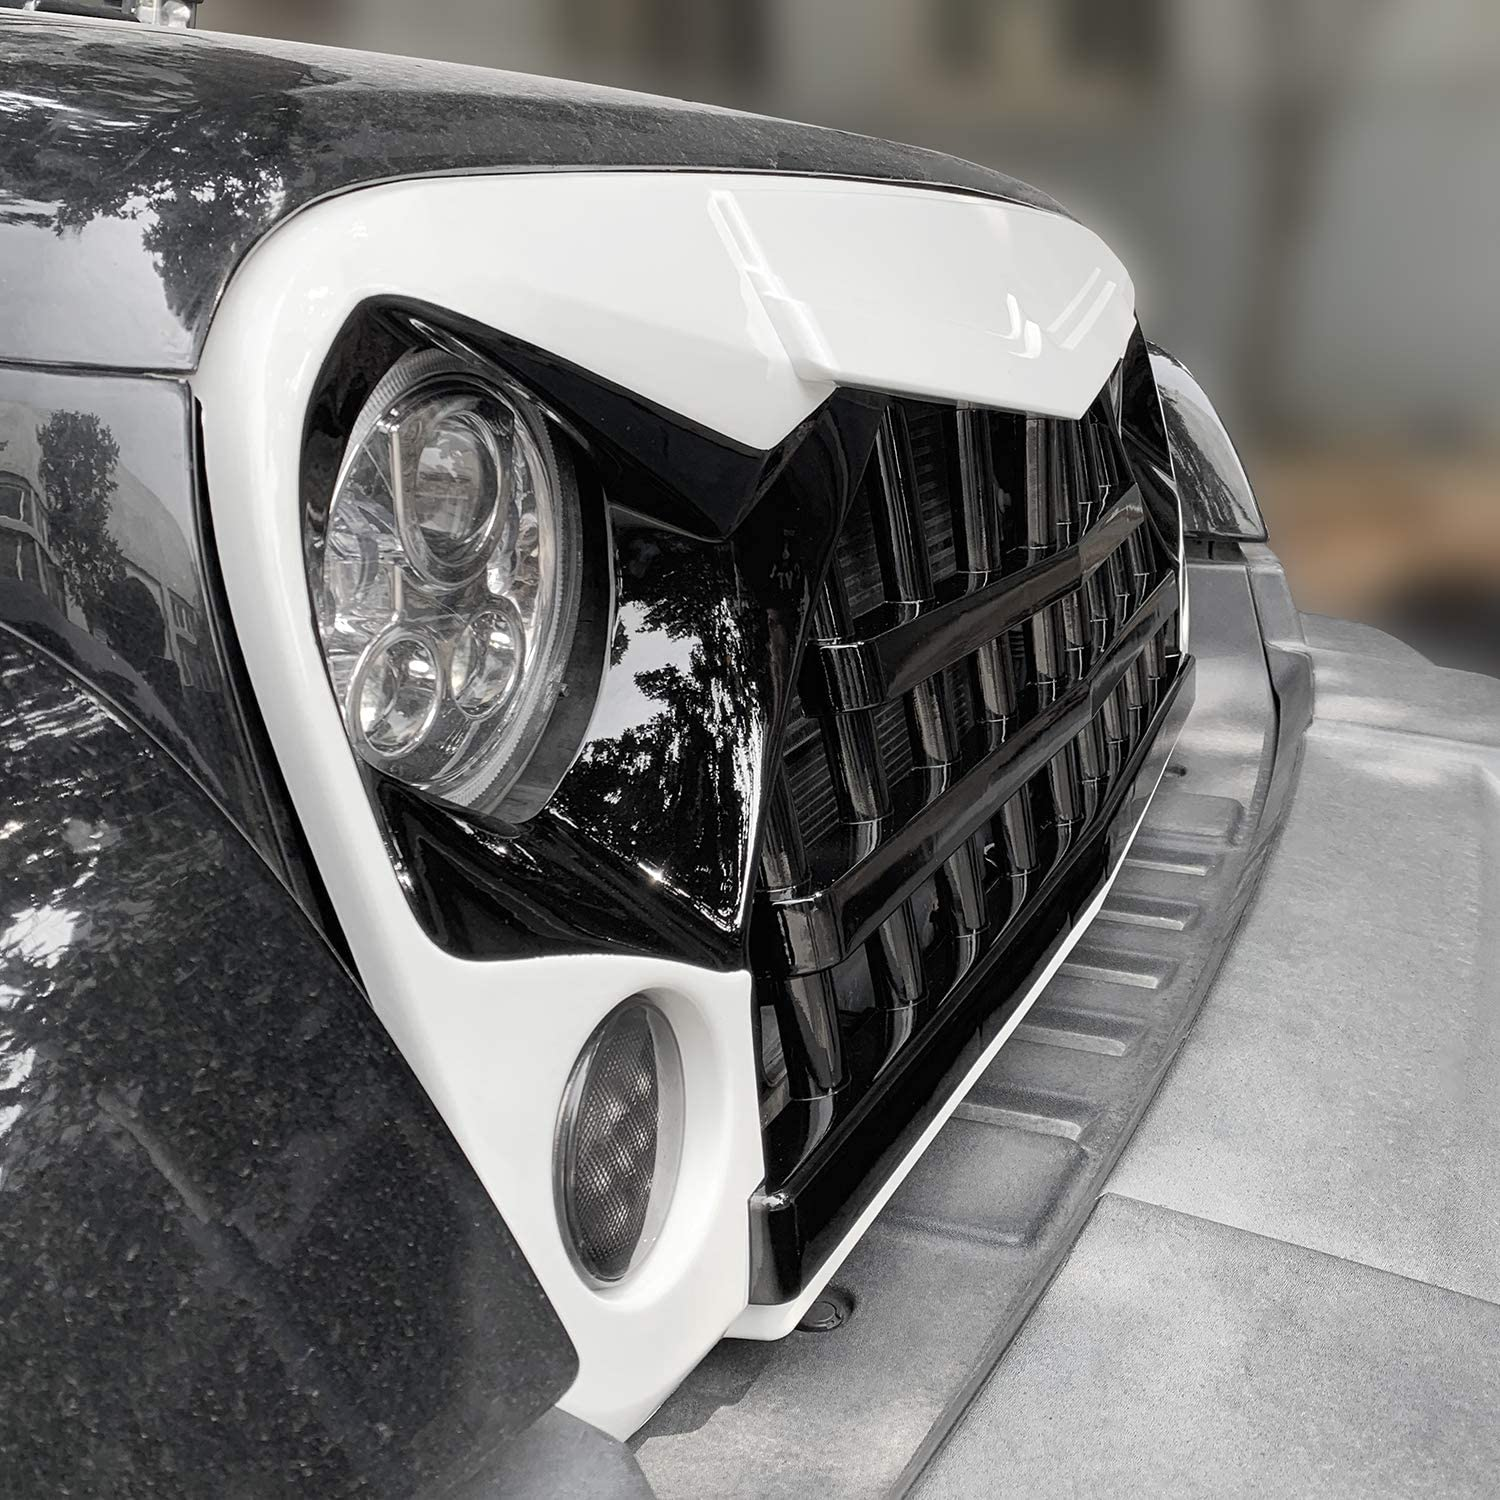 IBACP JK Front Grille Samurai Grid Grill Warrior Style Newest Grille Guard Bumper for 2007-22017 2018 Jeep Wrangler JK /& JKU 2//4 Door Unlimited Rubicon Sahara Sport Exteriro Parts Glossy Black